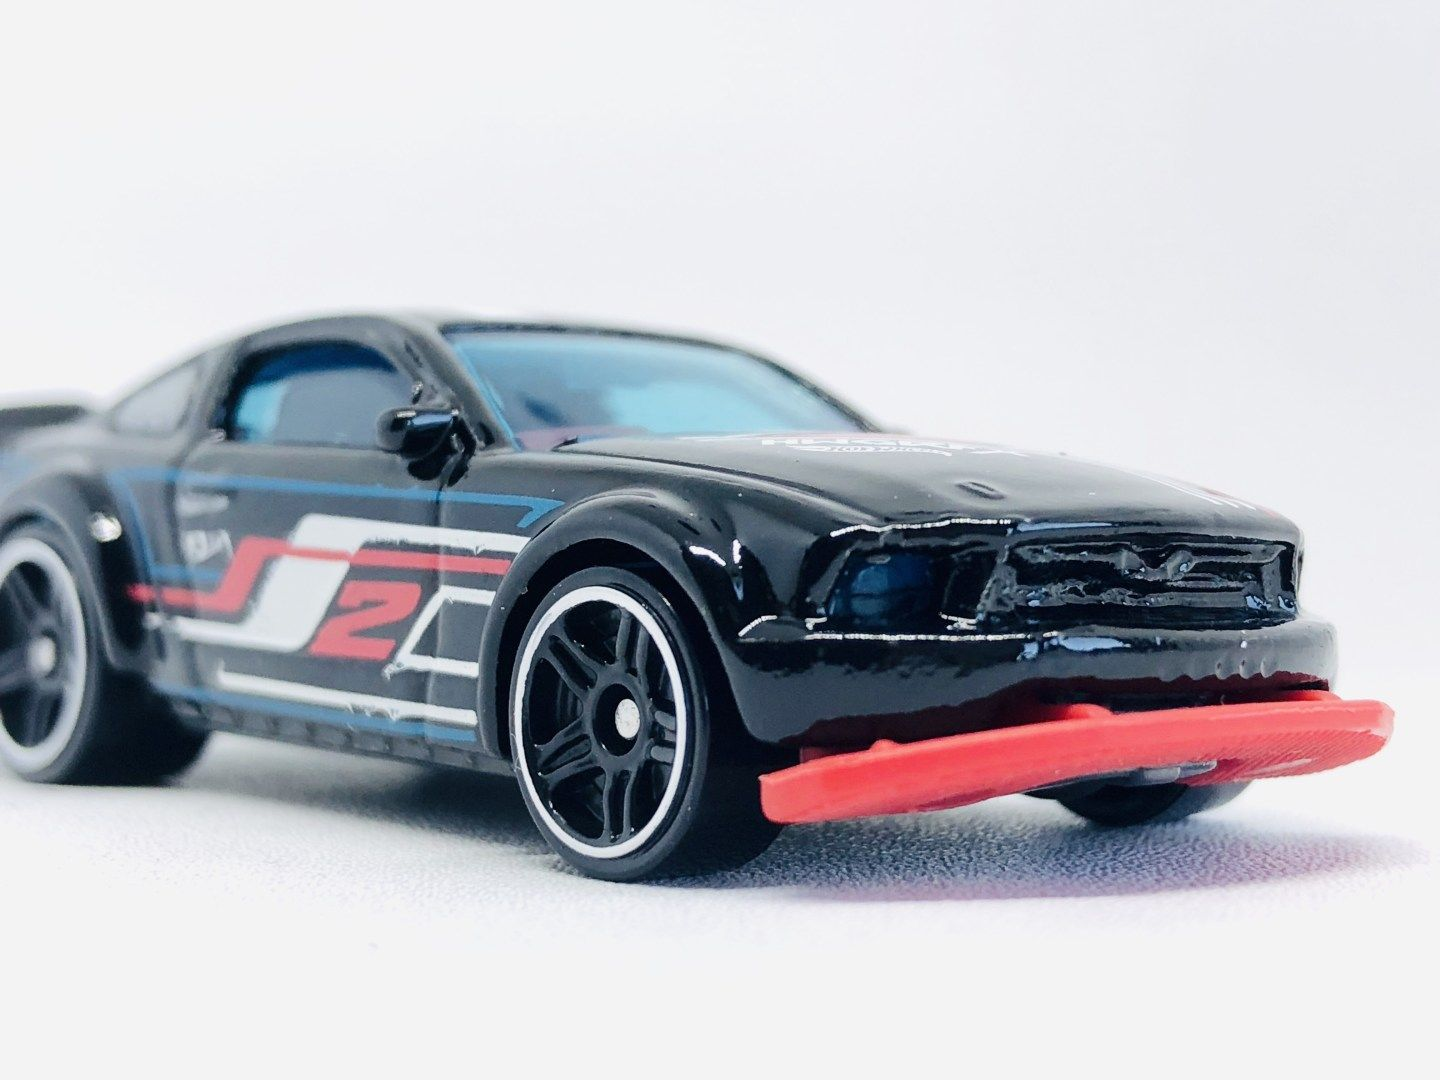 Hot Wheels Hunting Toys R Us Suntec City Singapore 2019 Hot